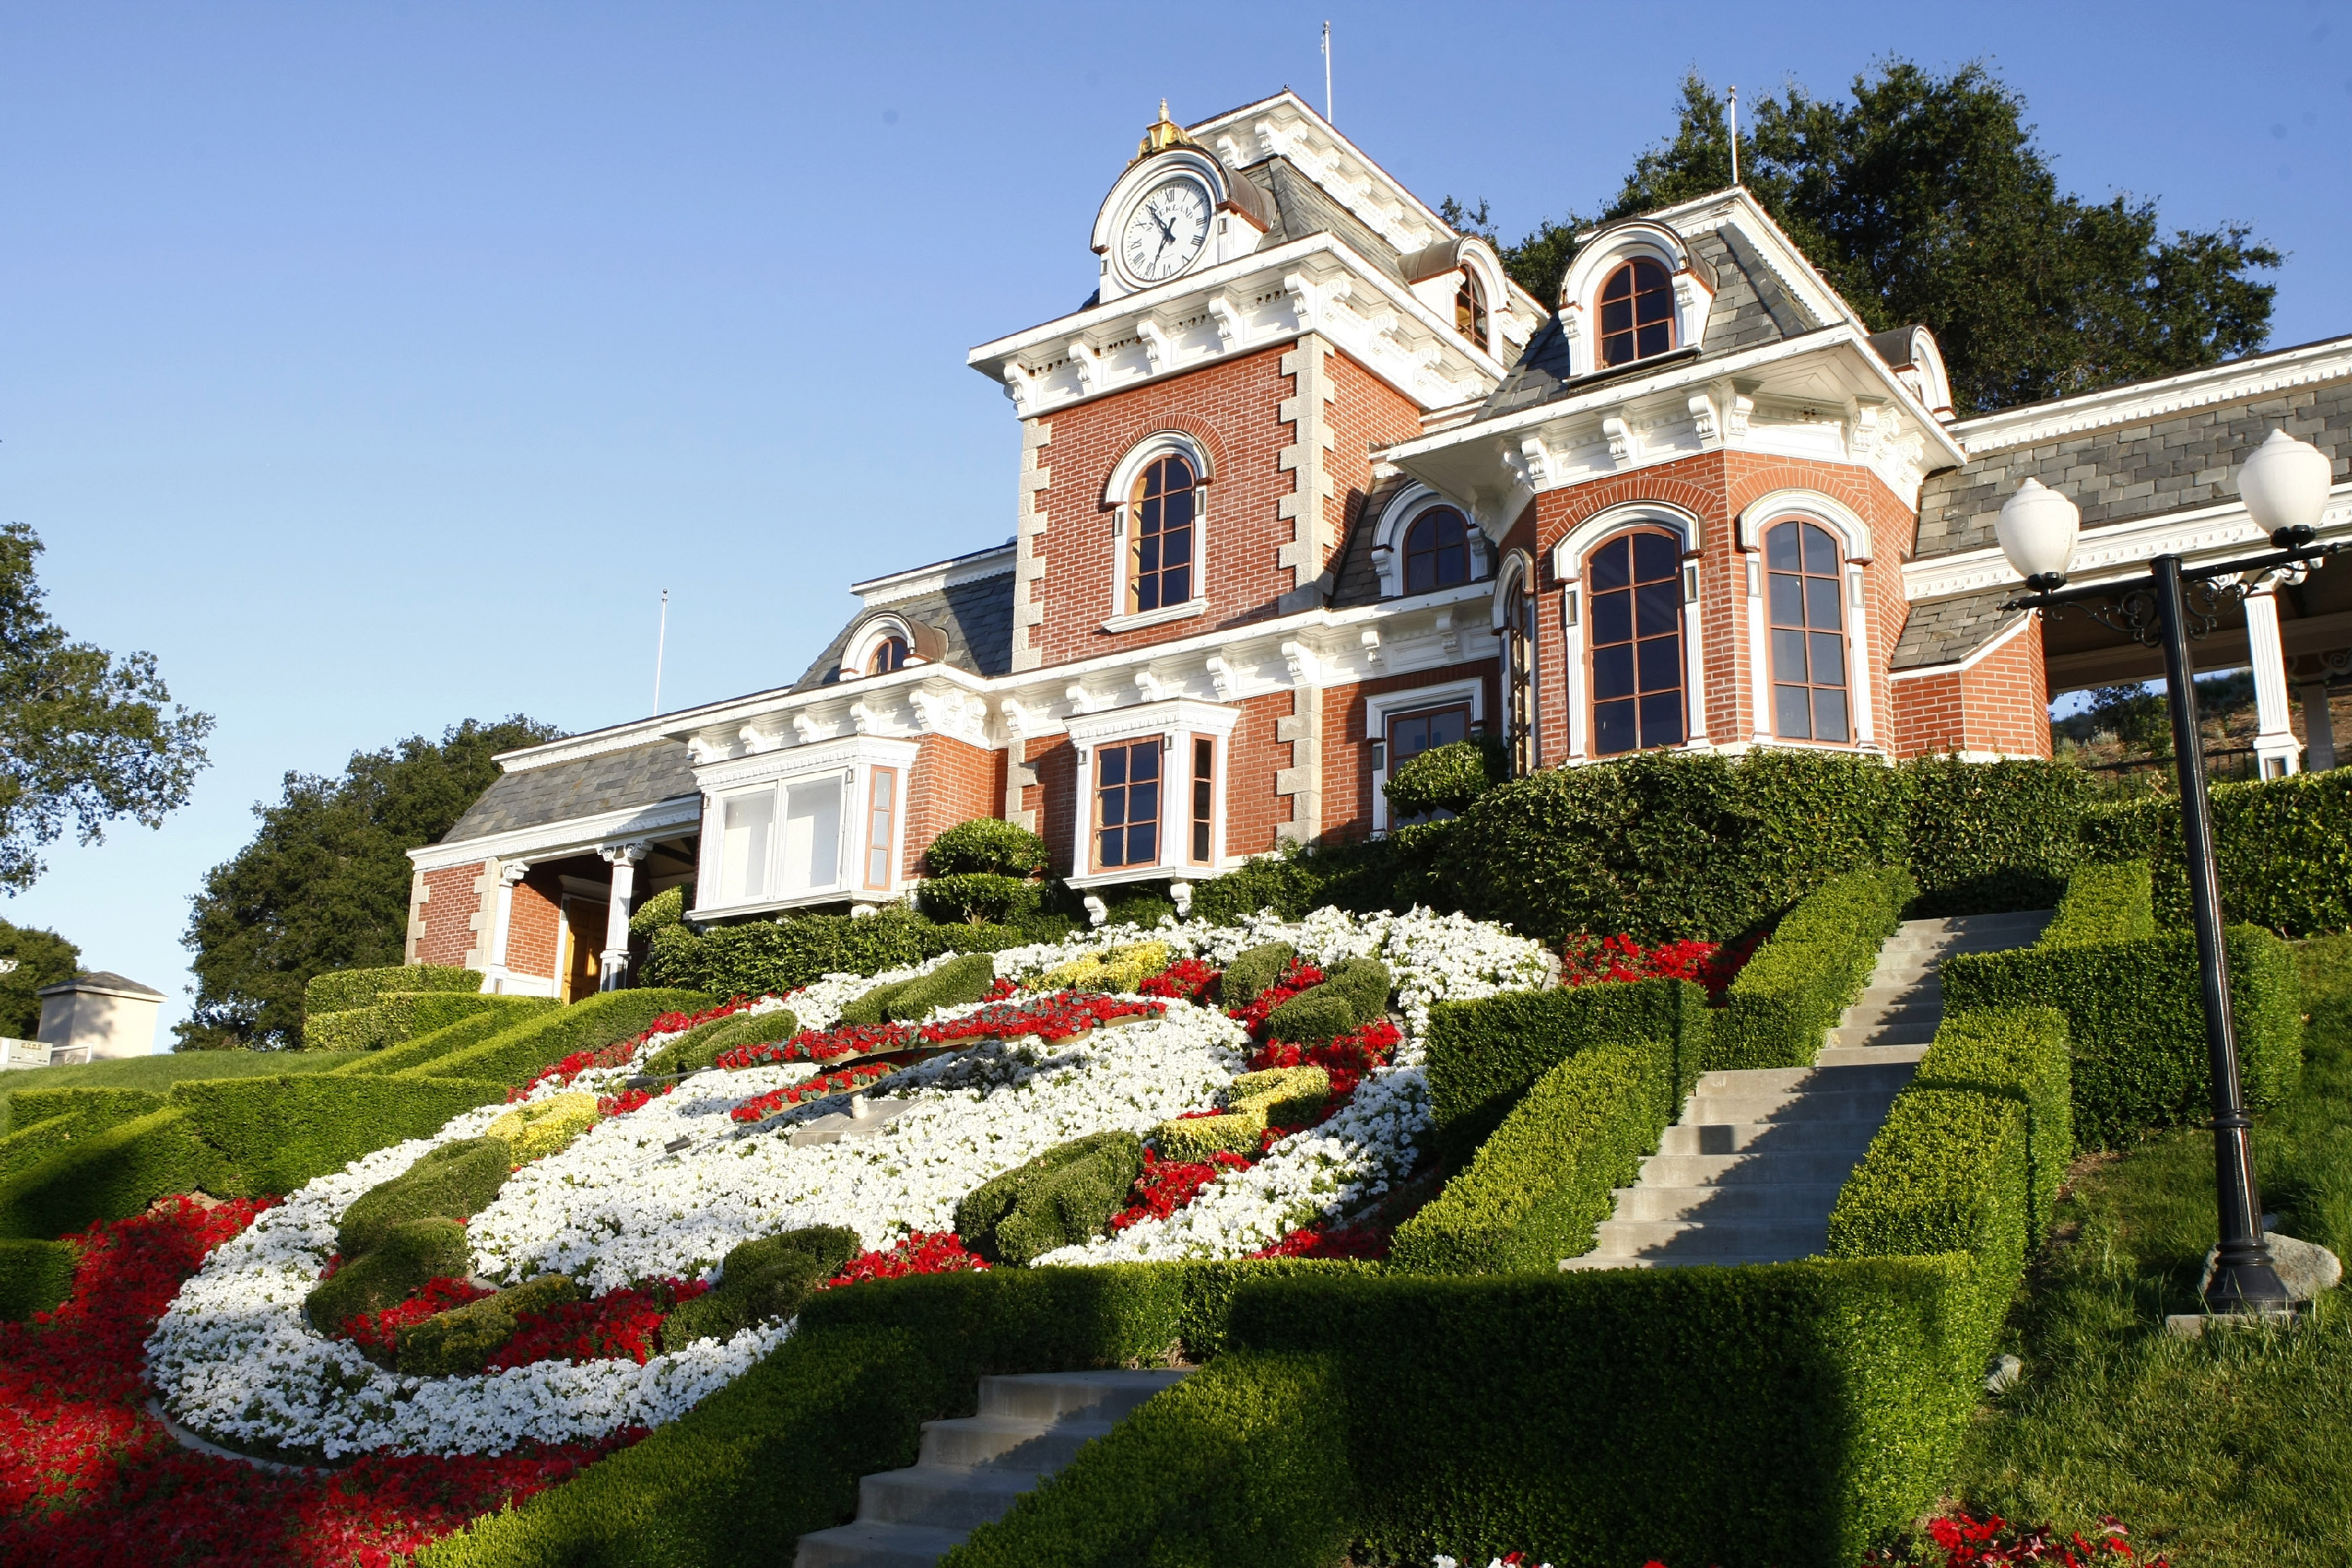 NBC News' Matt Lauer gets an exclusive behind-the-scenes of Neverland Ranch, where Michael Jackson lived for 15 years, getting a rare look inside the private world of the King of Pop.